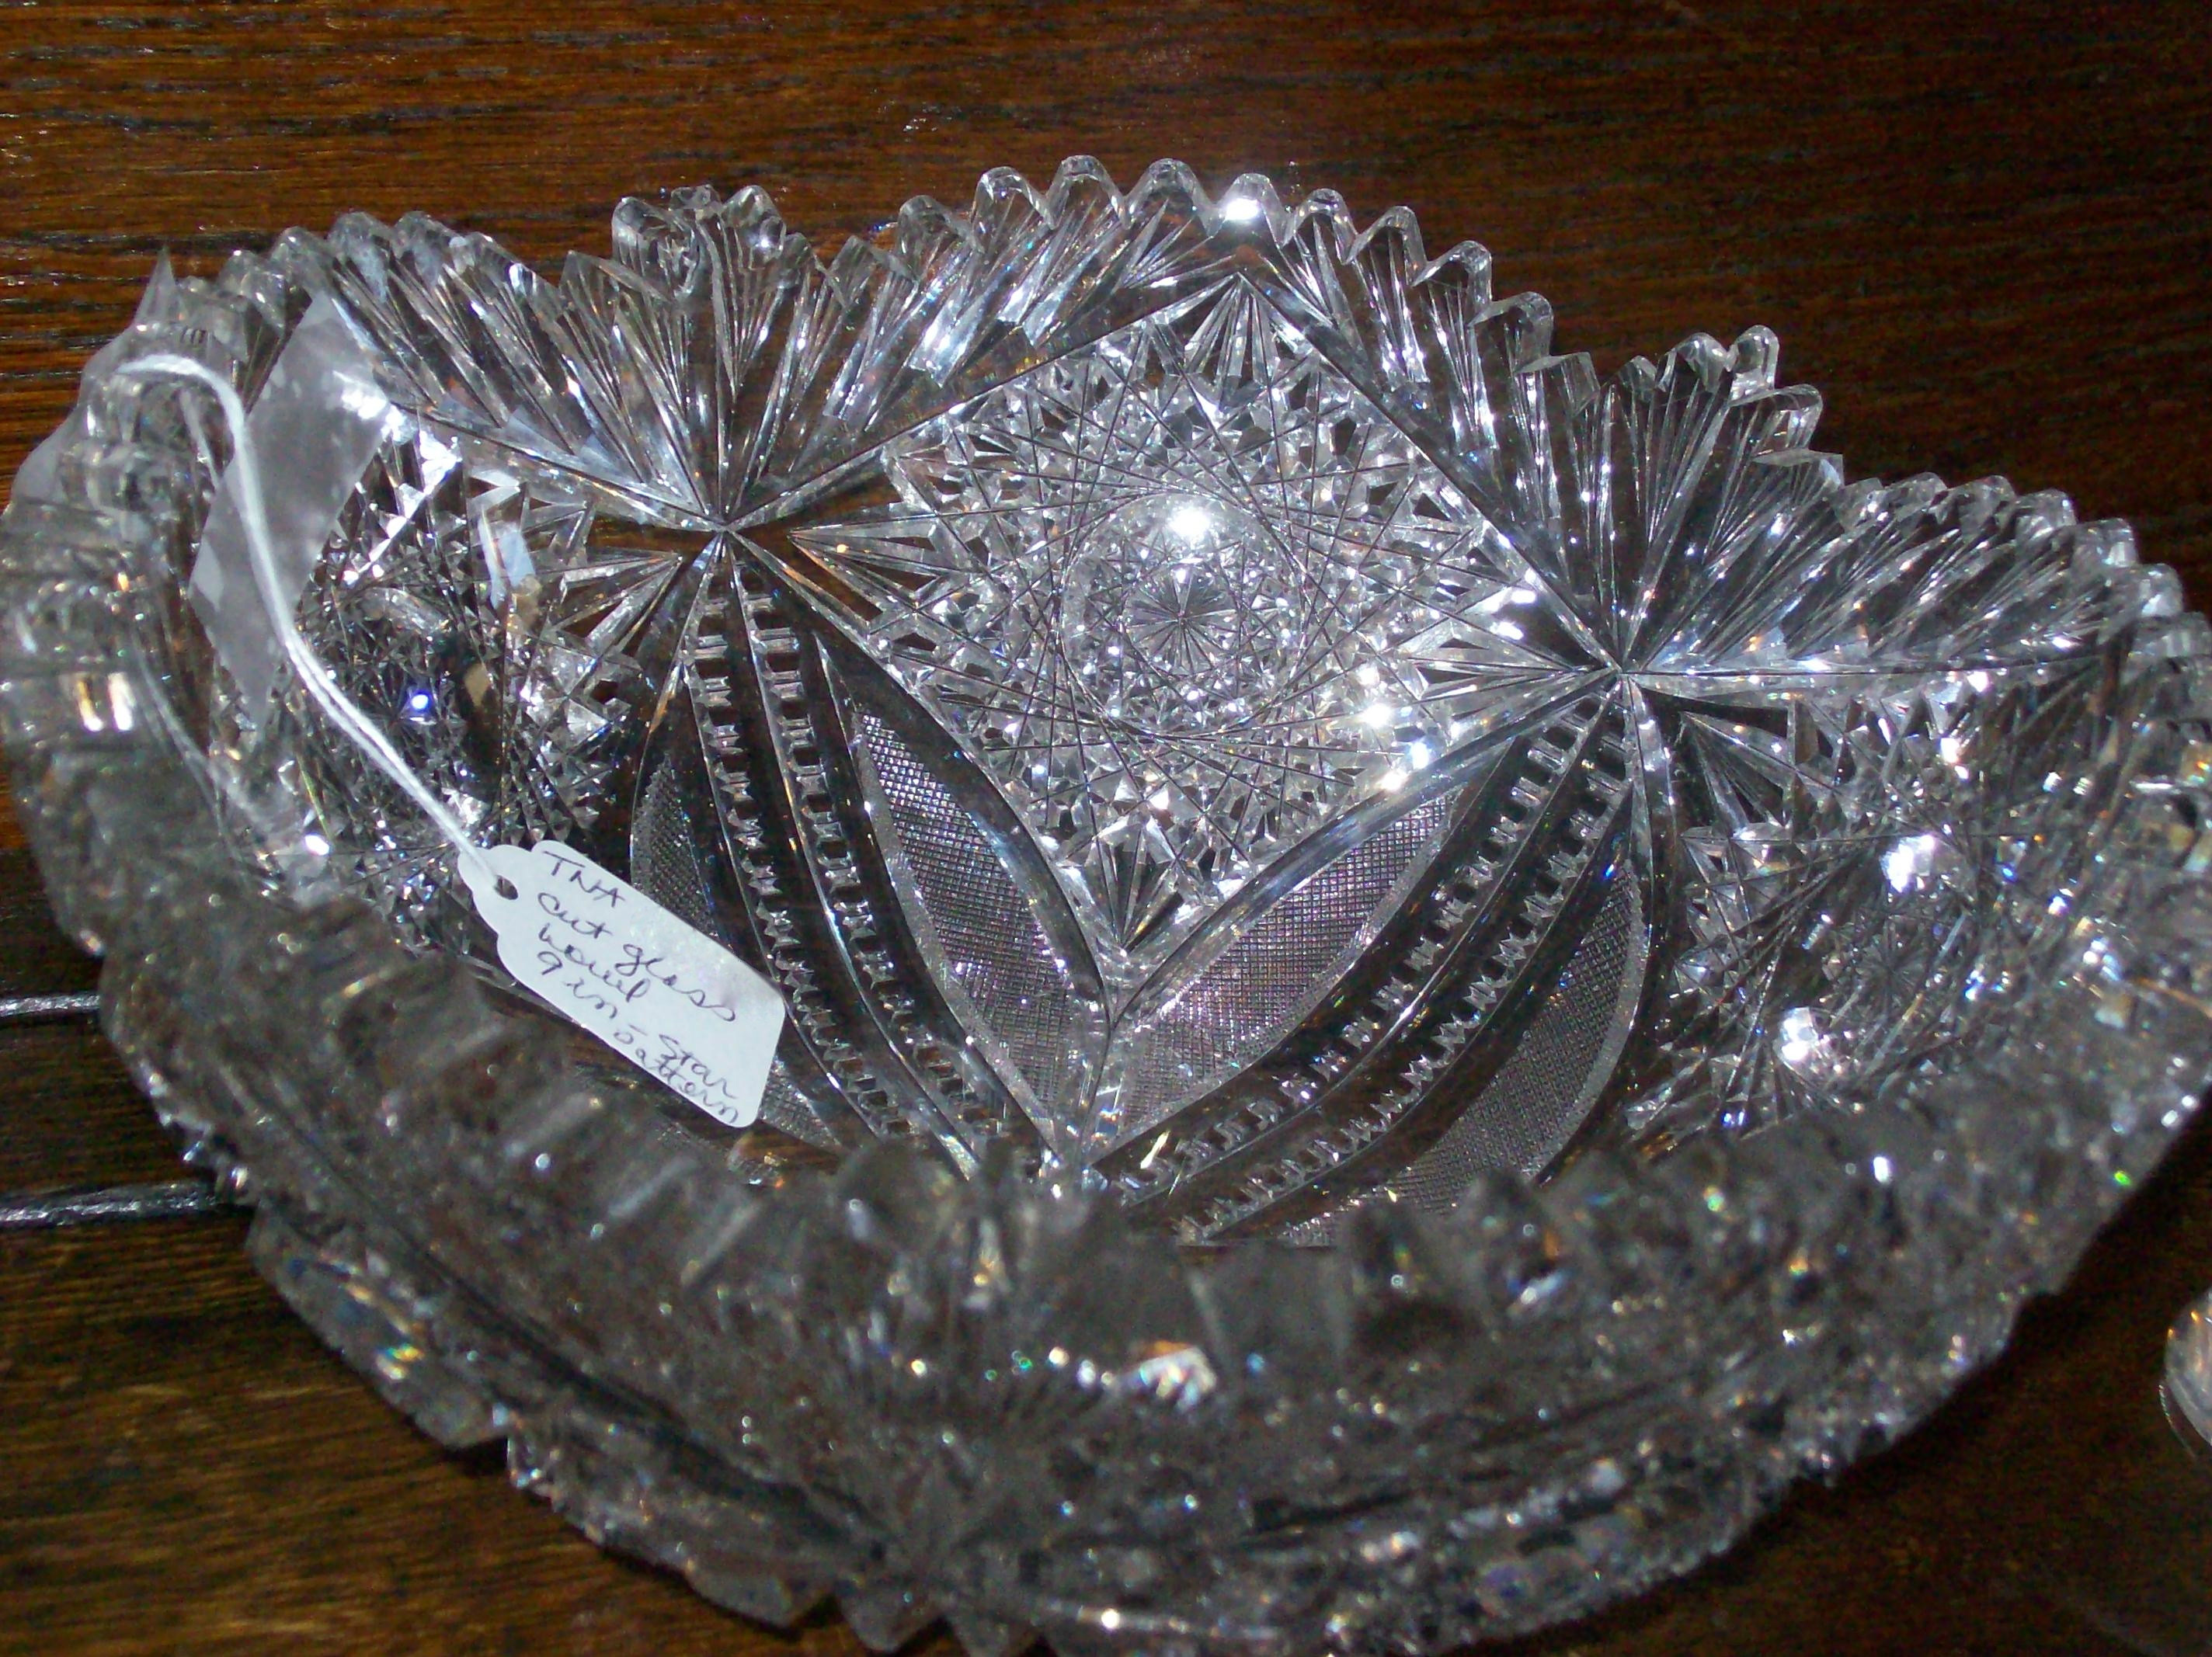 21 Trendy Vintage Waterford Crystal Vase 2021 free download vintage waterford crystal vase of is it pressed glass or cut glass janvier road where cut crystal inside is it pressed glass or cut glass janvier road where